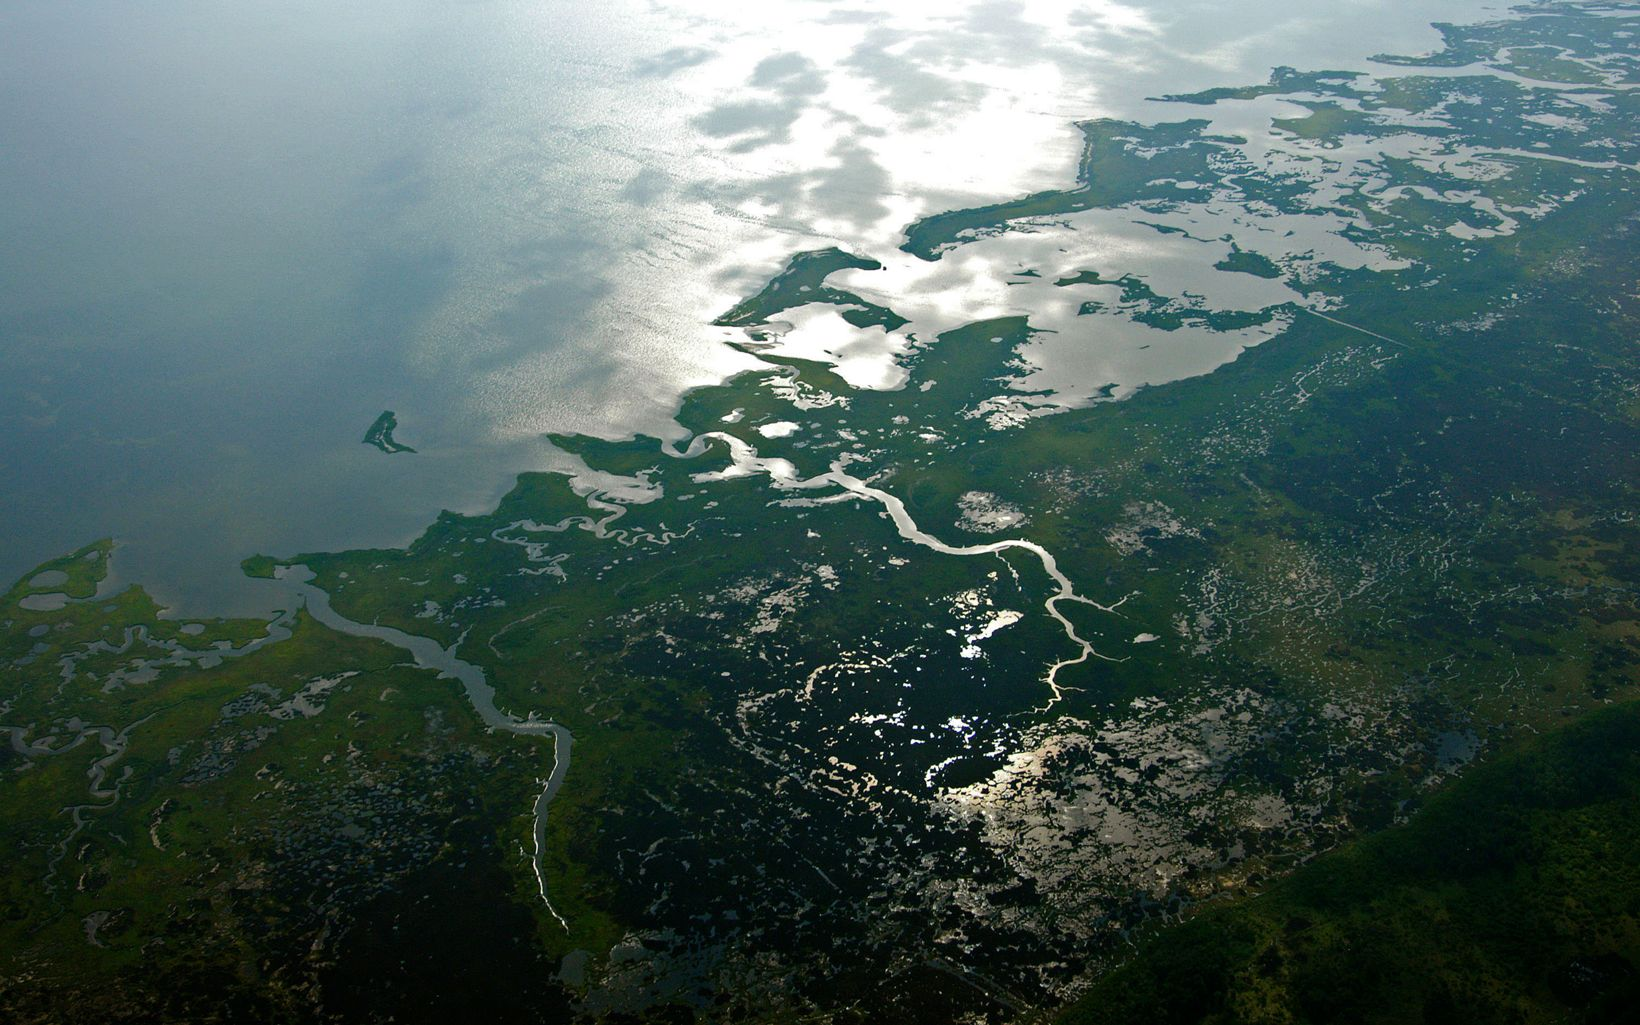 An aerial photo shows intricate pattern of coastal wetlands meeting the open water of the Chesapeake Bay.